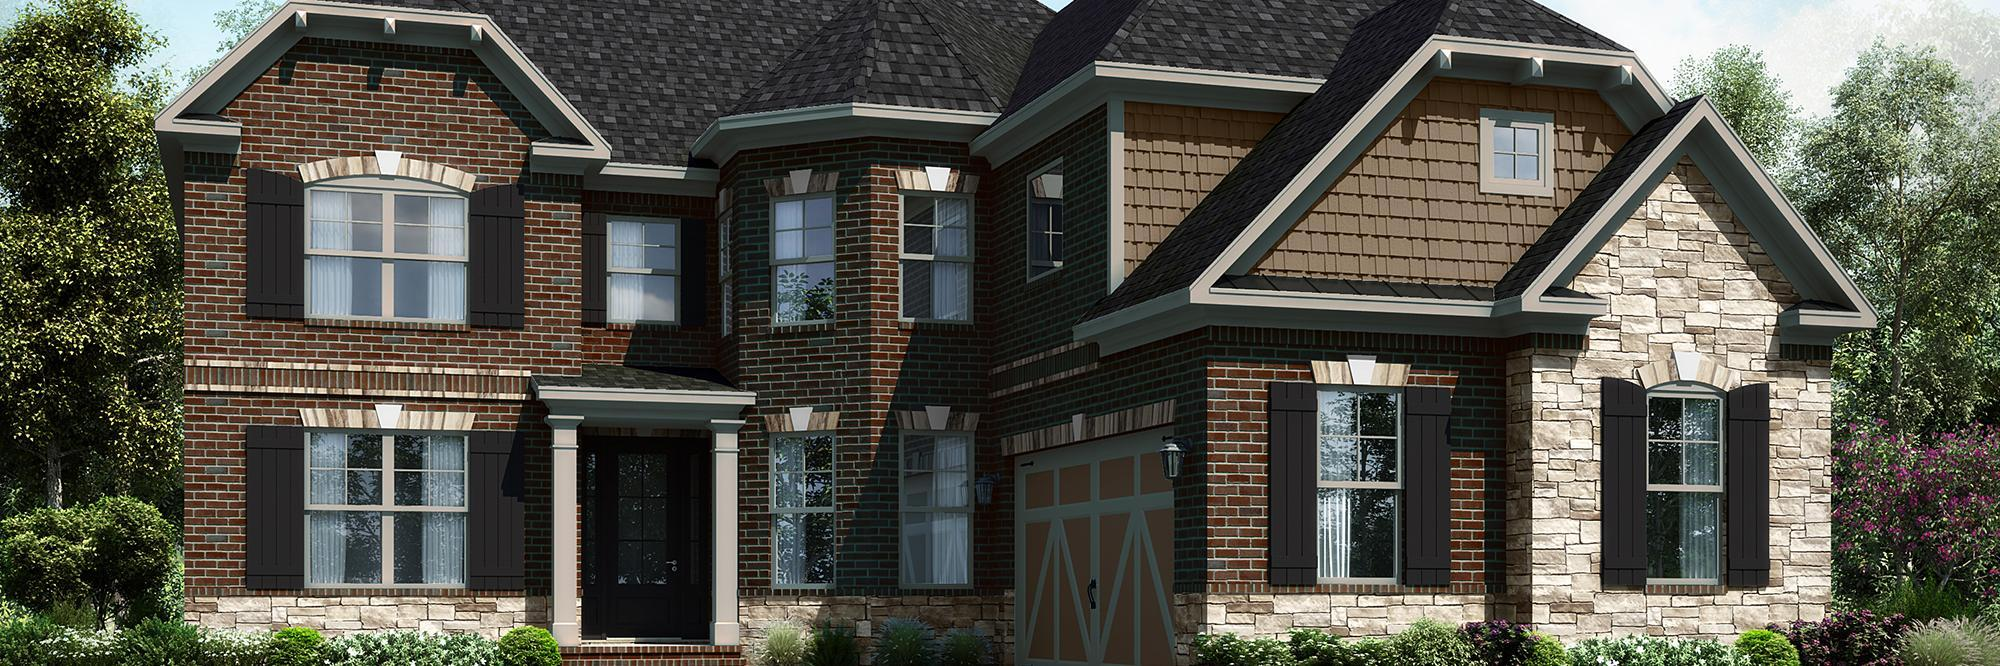 Single Family for Active at Hartford-Wb 2020 Shoal Crest Way Cumming, Georgia 30041 United States